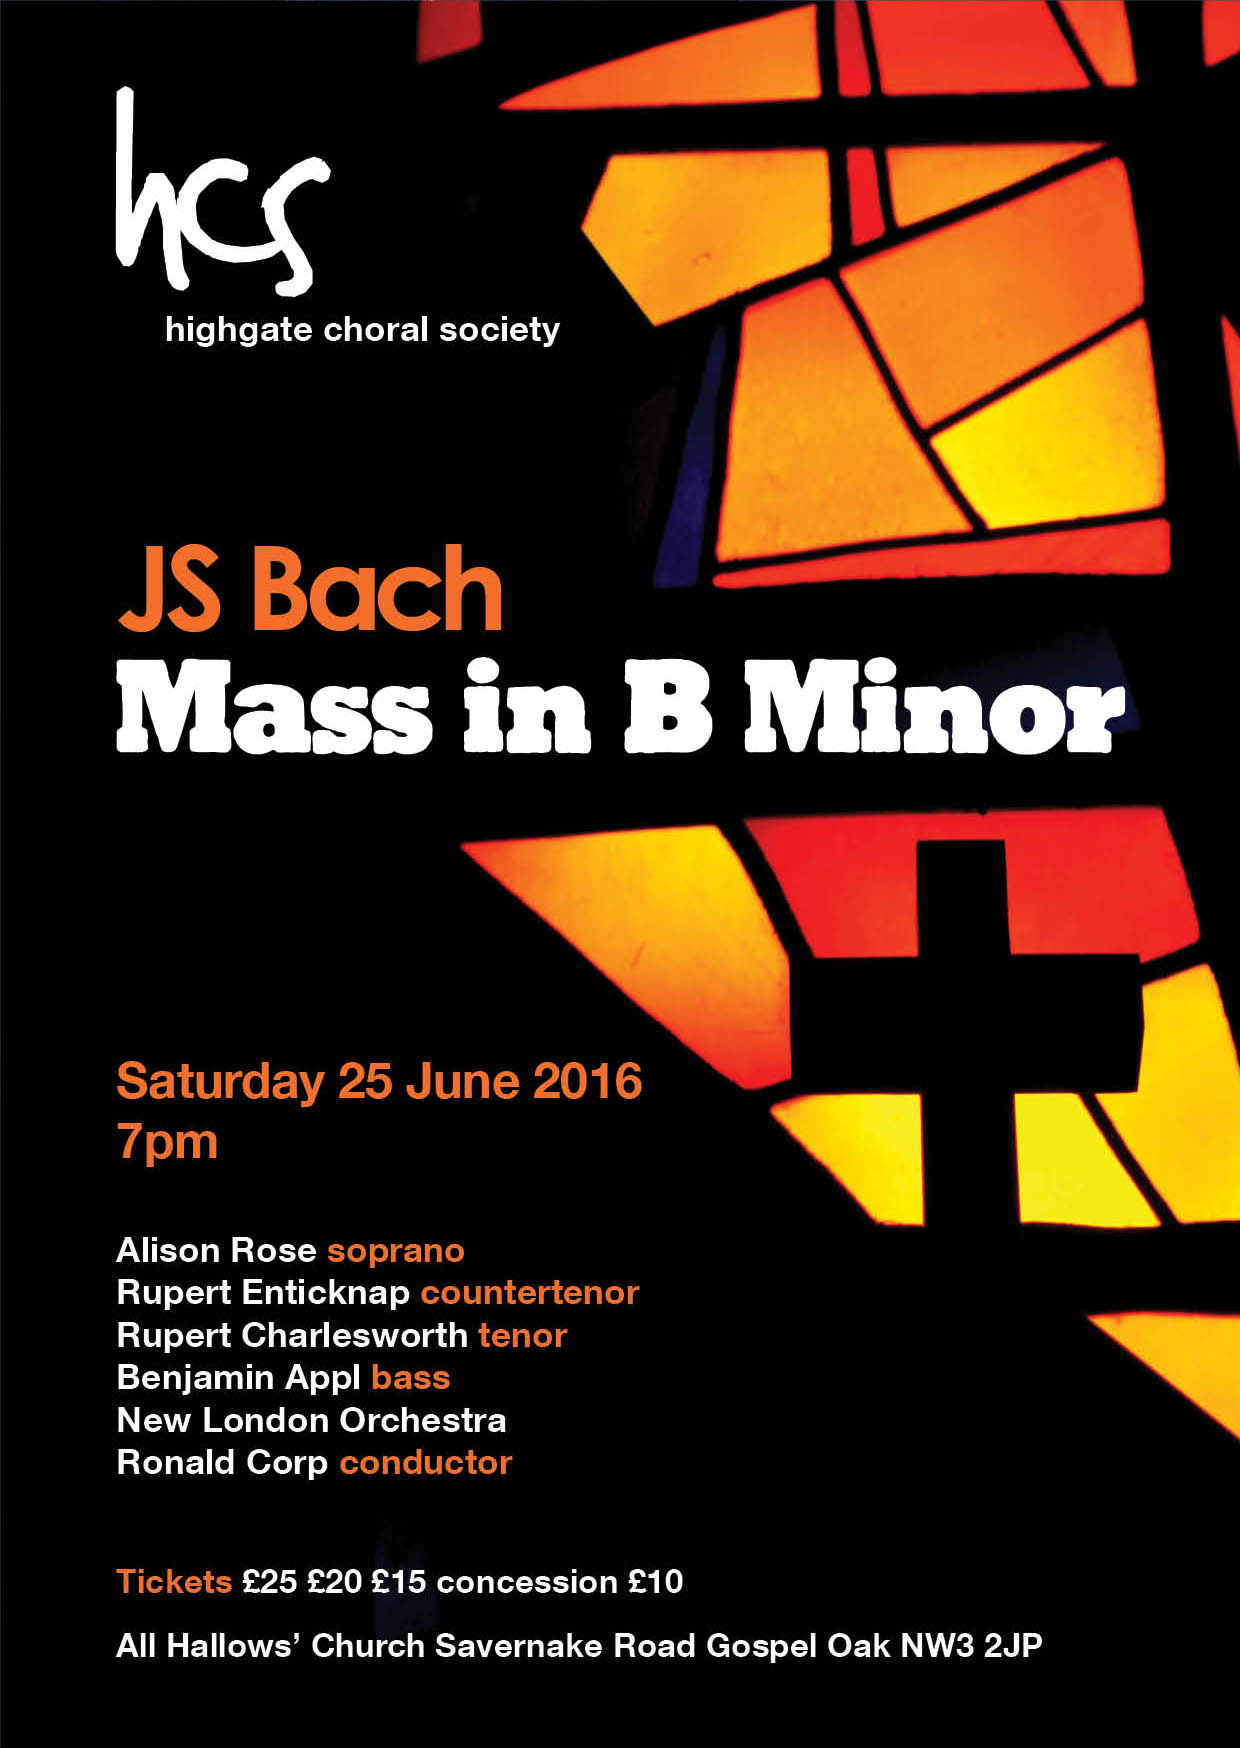 hcs_1516_mass_b_minor-season-leaflet